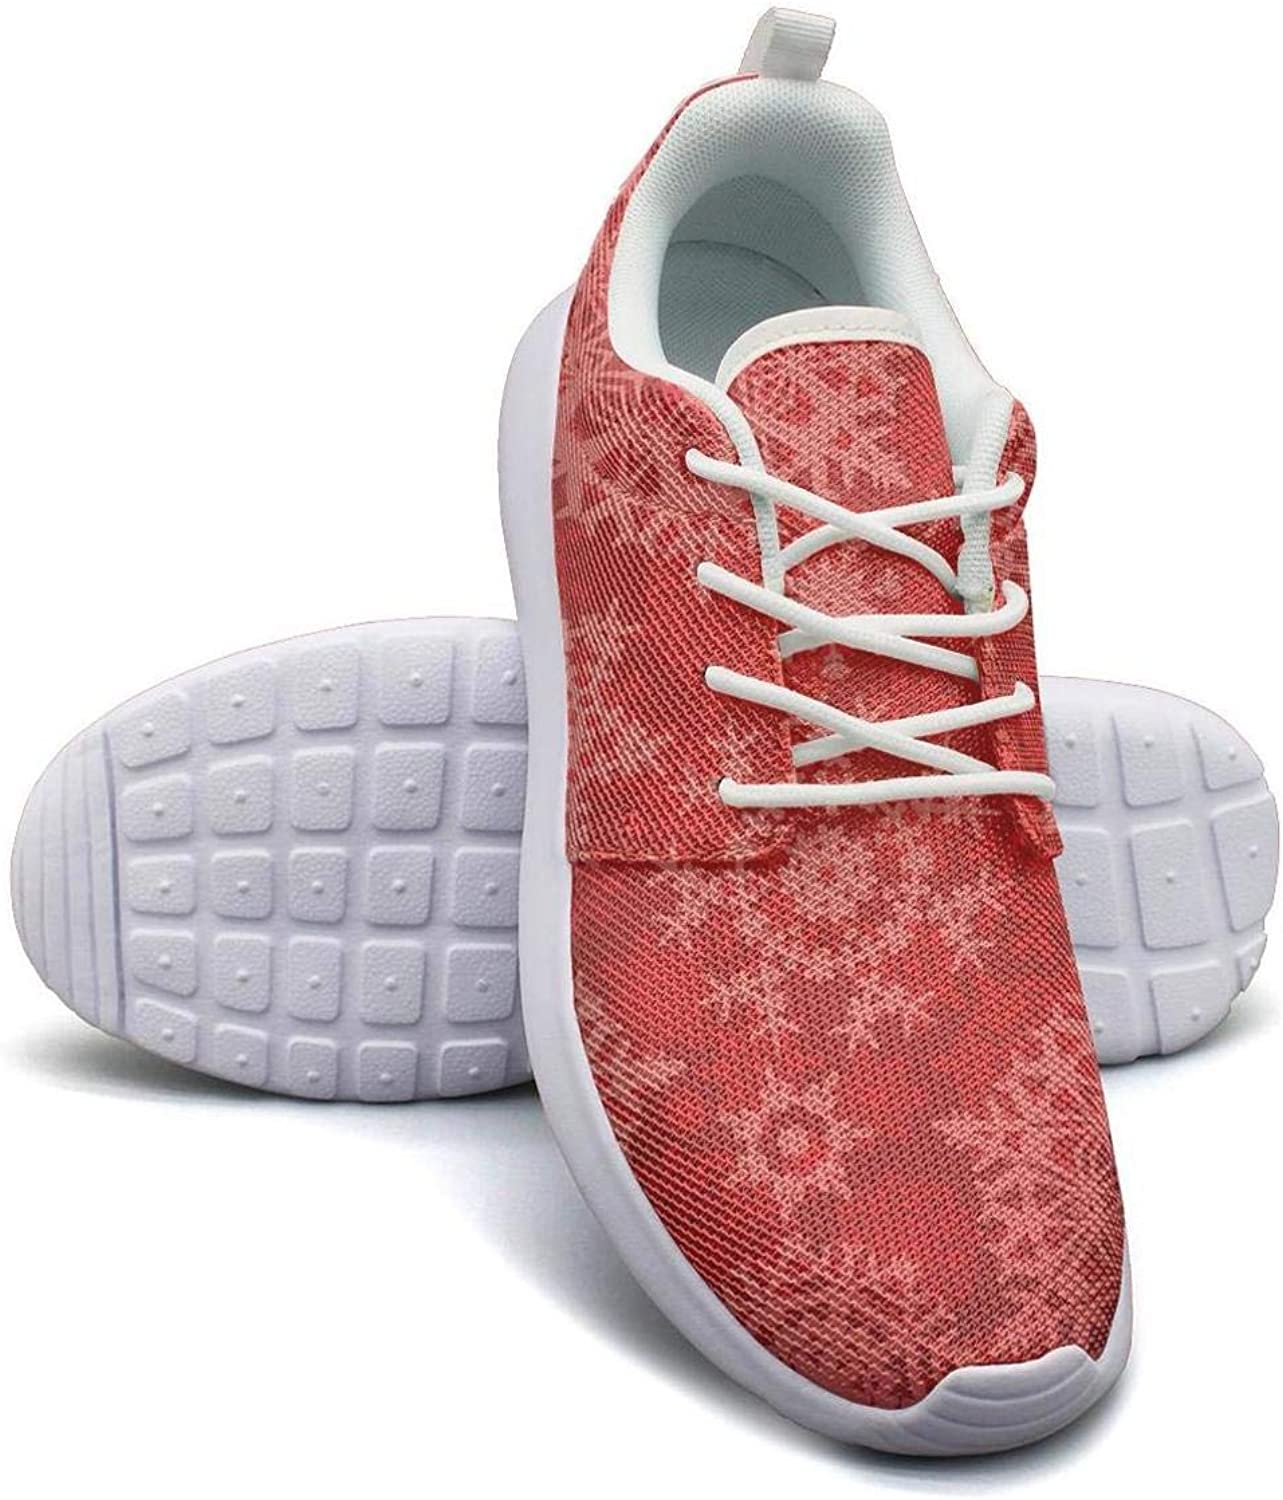 Gjsonmv Christmas red Snowflakes mesh Lightweight shoes for Women Dad Sports Hiking Sneakers shoes